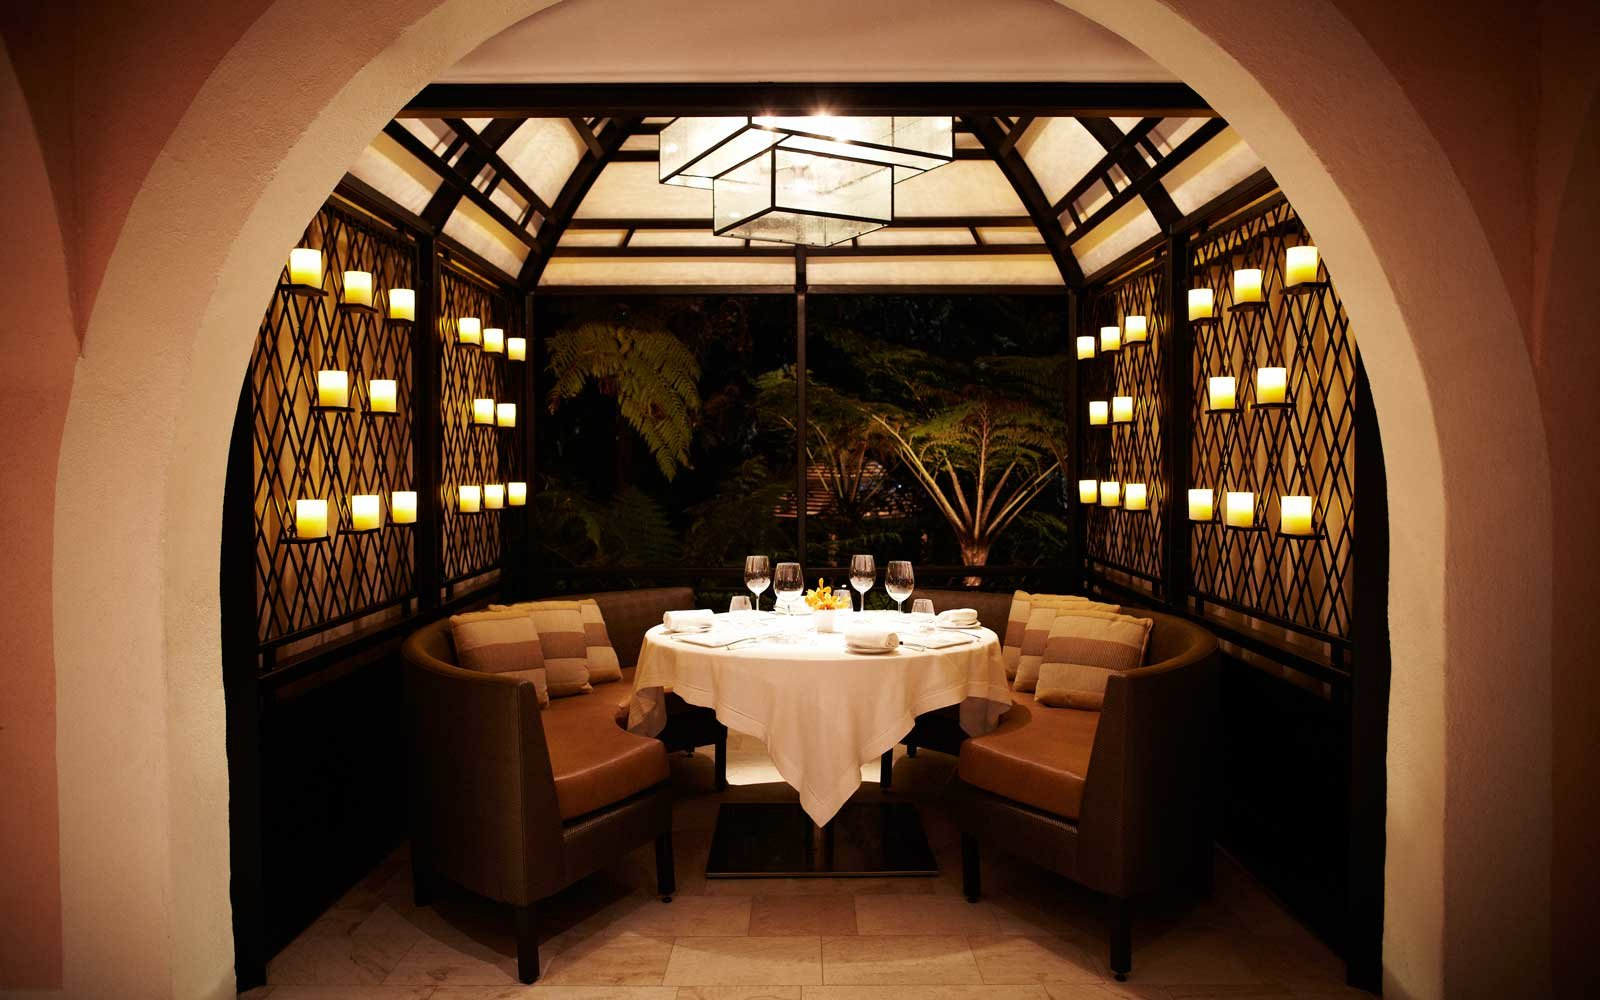 Hotel Bel Air — Los Angeles, California